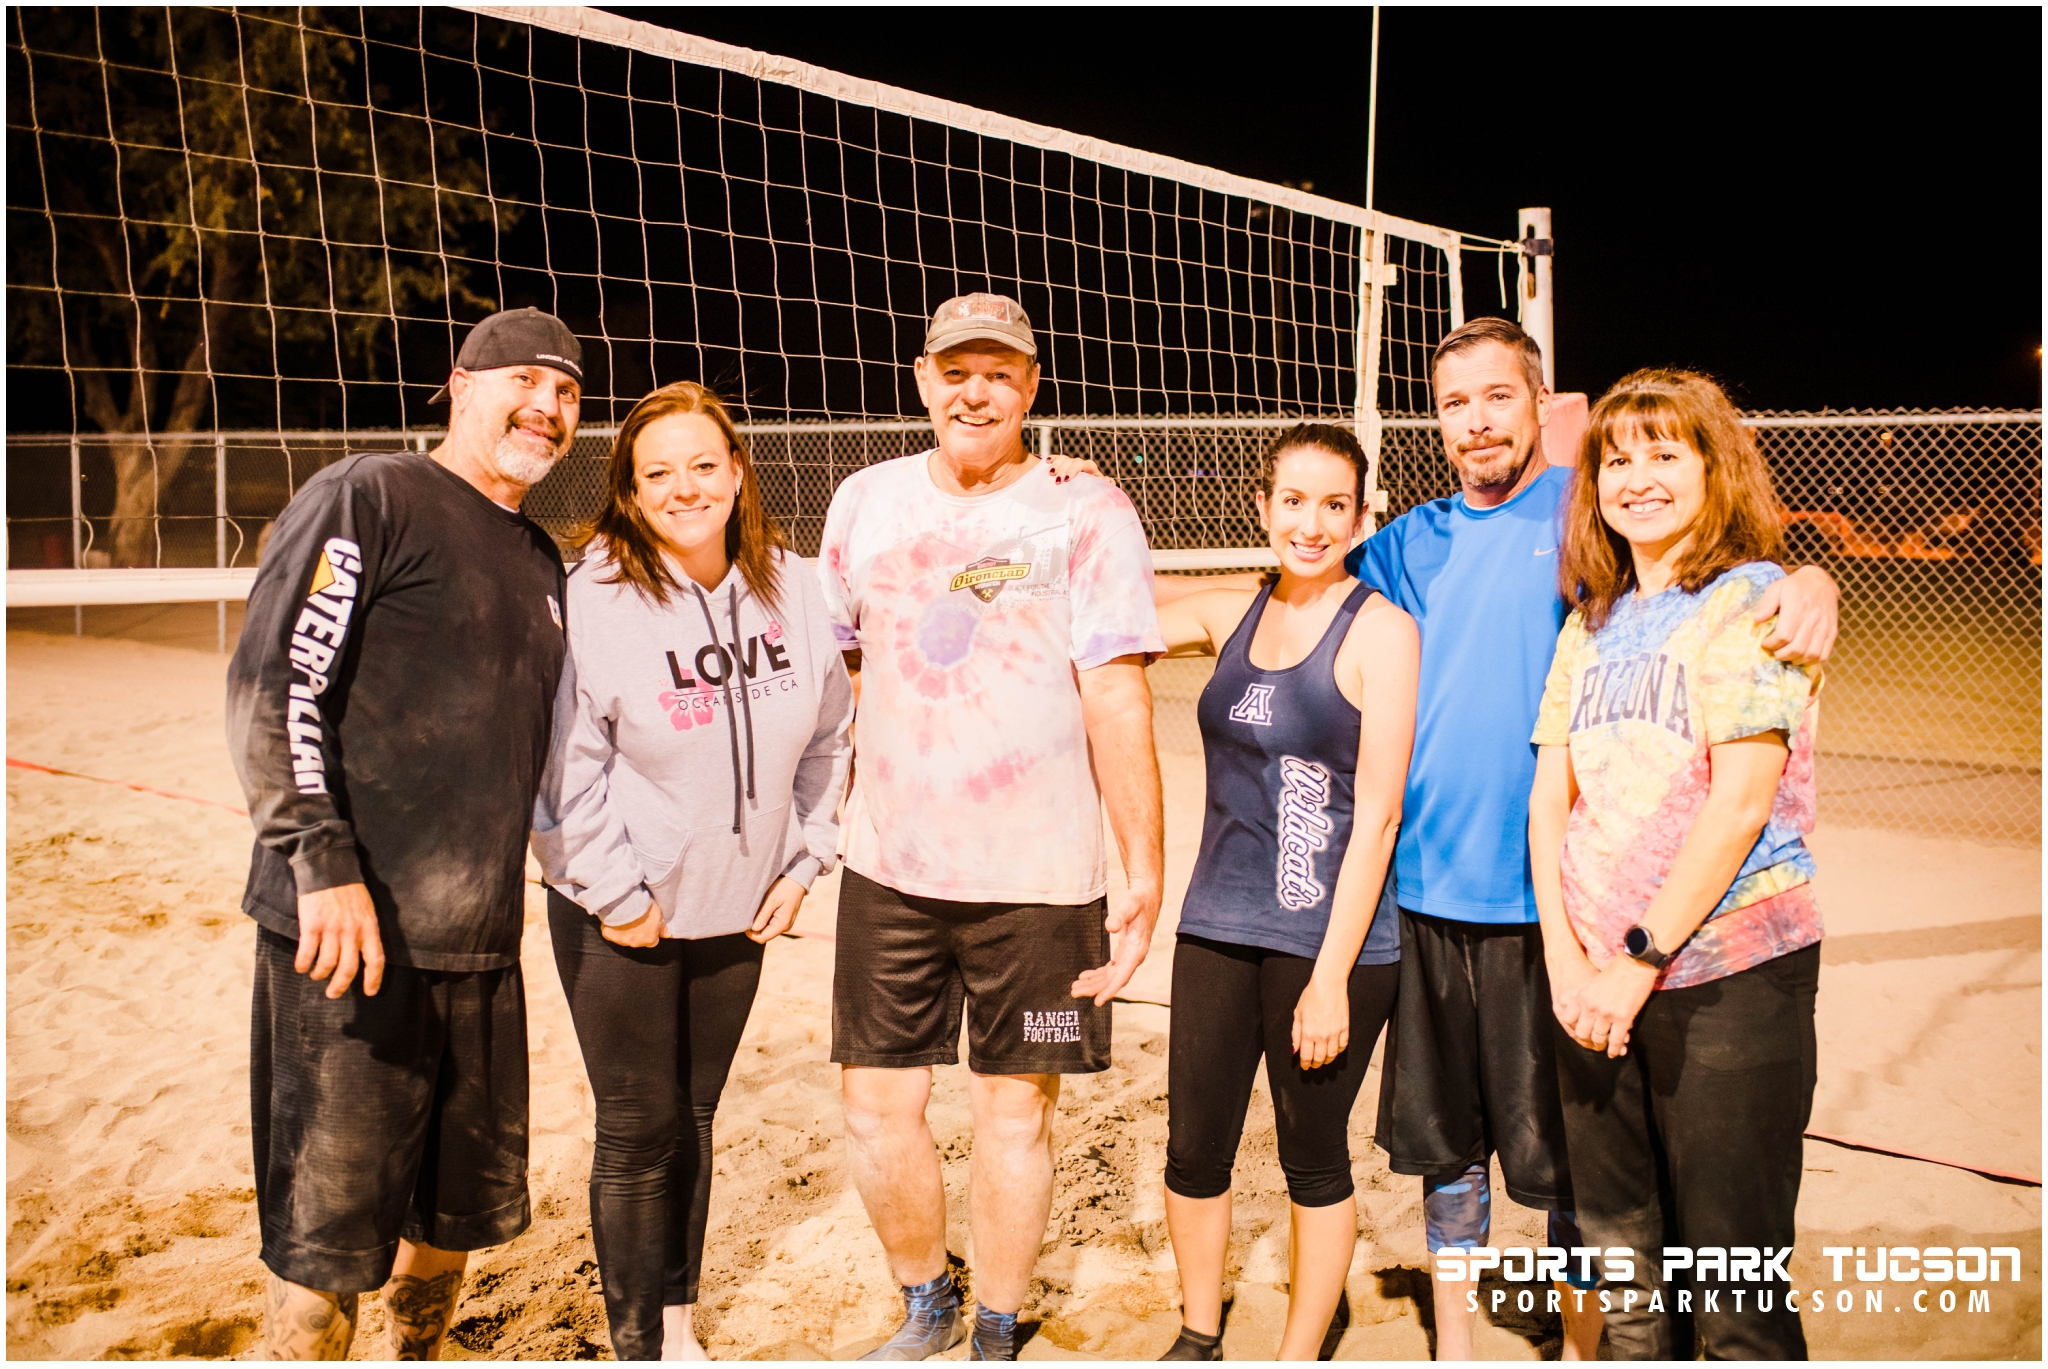 Volleyball Fri Co-ed 6v6 - C, Team: Spike-a-delic